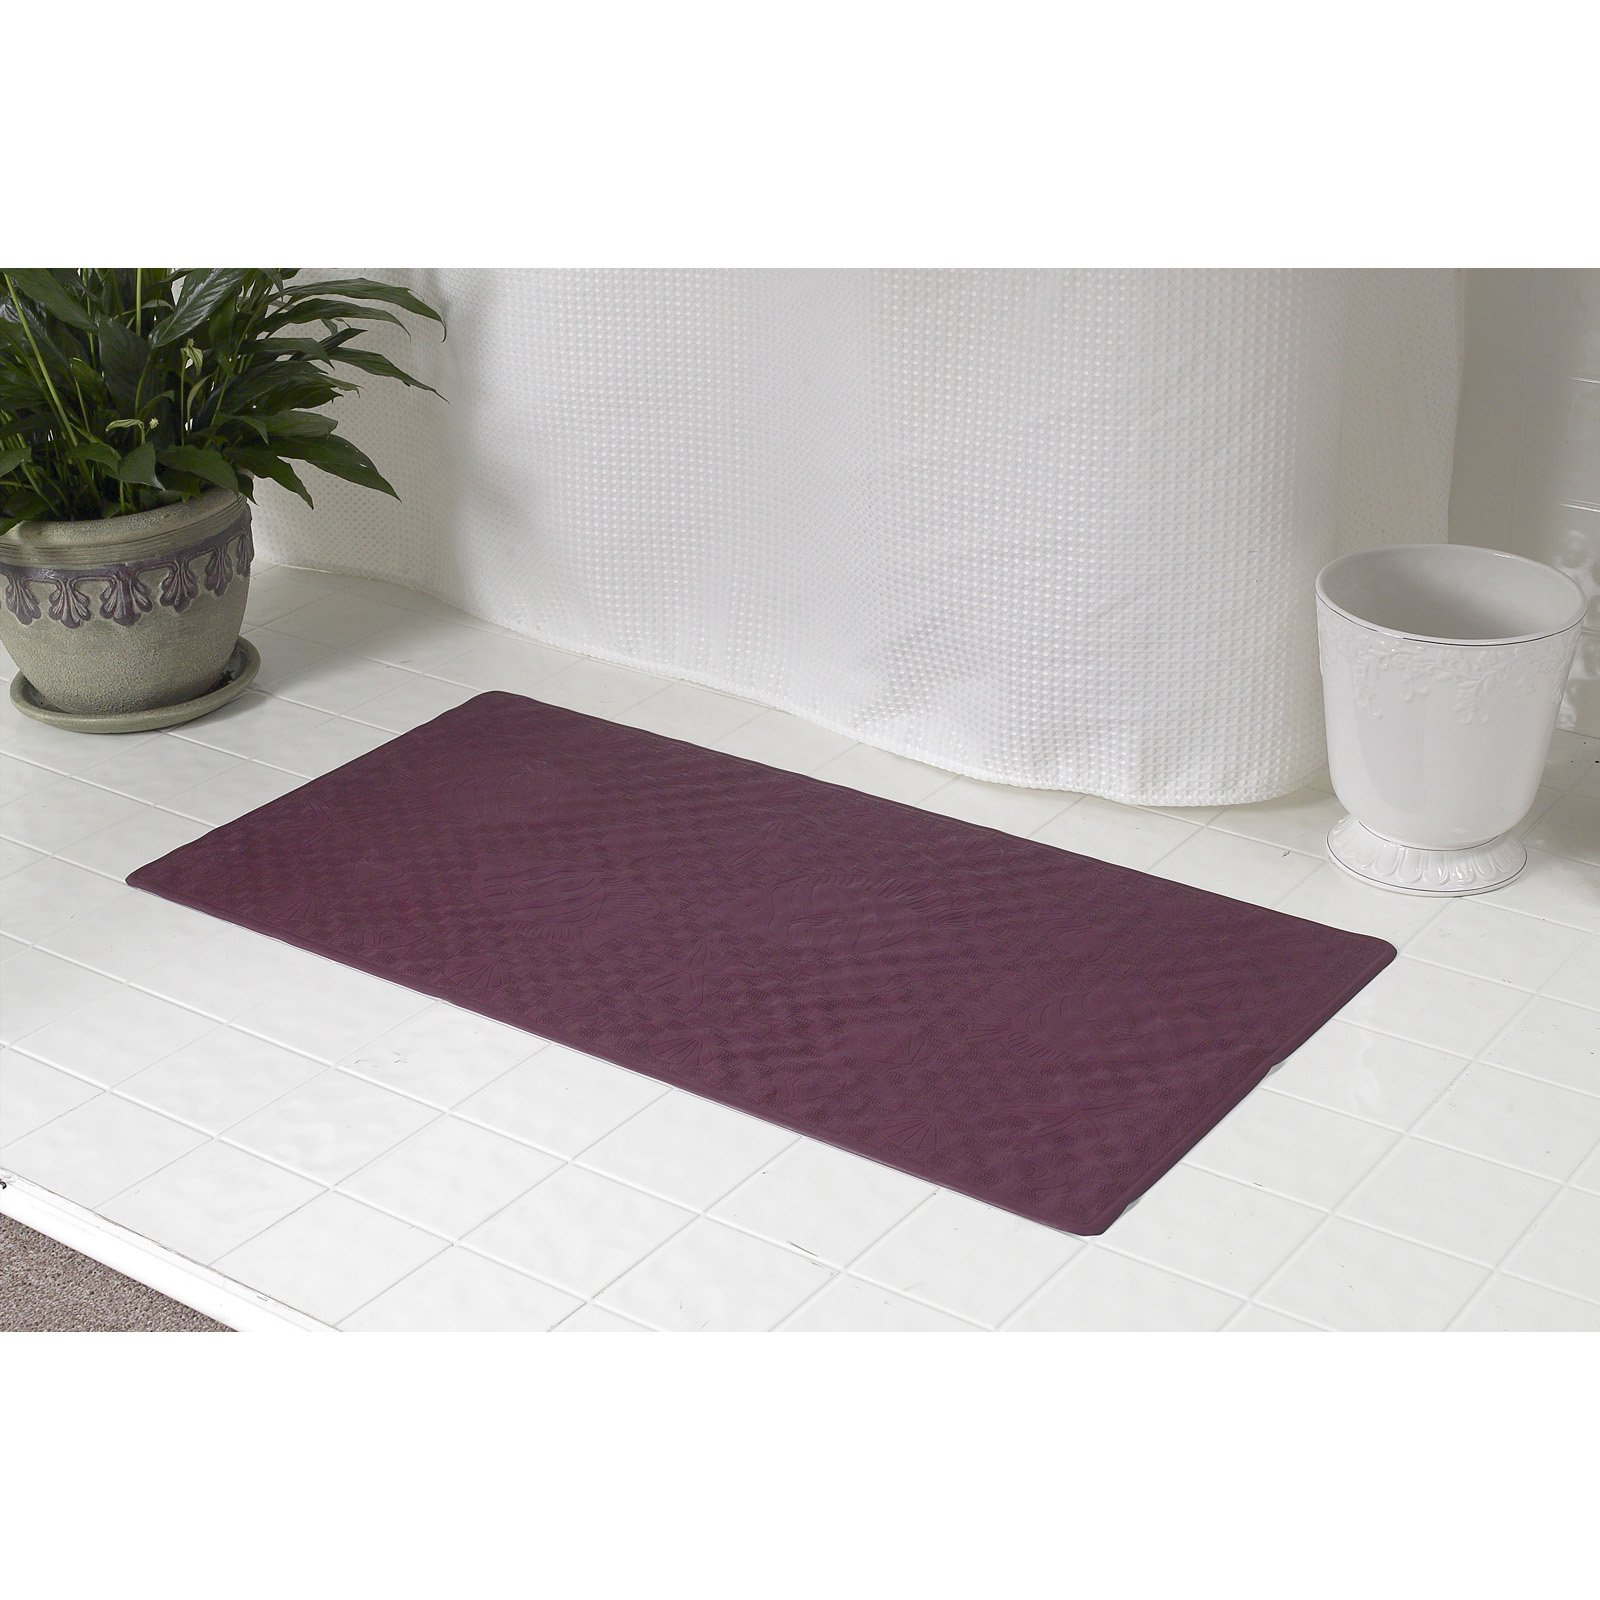 Small (13'' x 20'') Slip-Resistant Rubber Bath Tub Mat in Burgundy